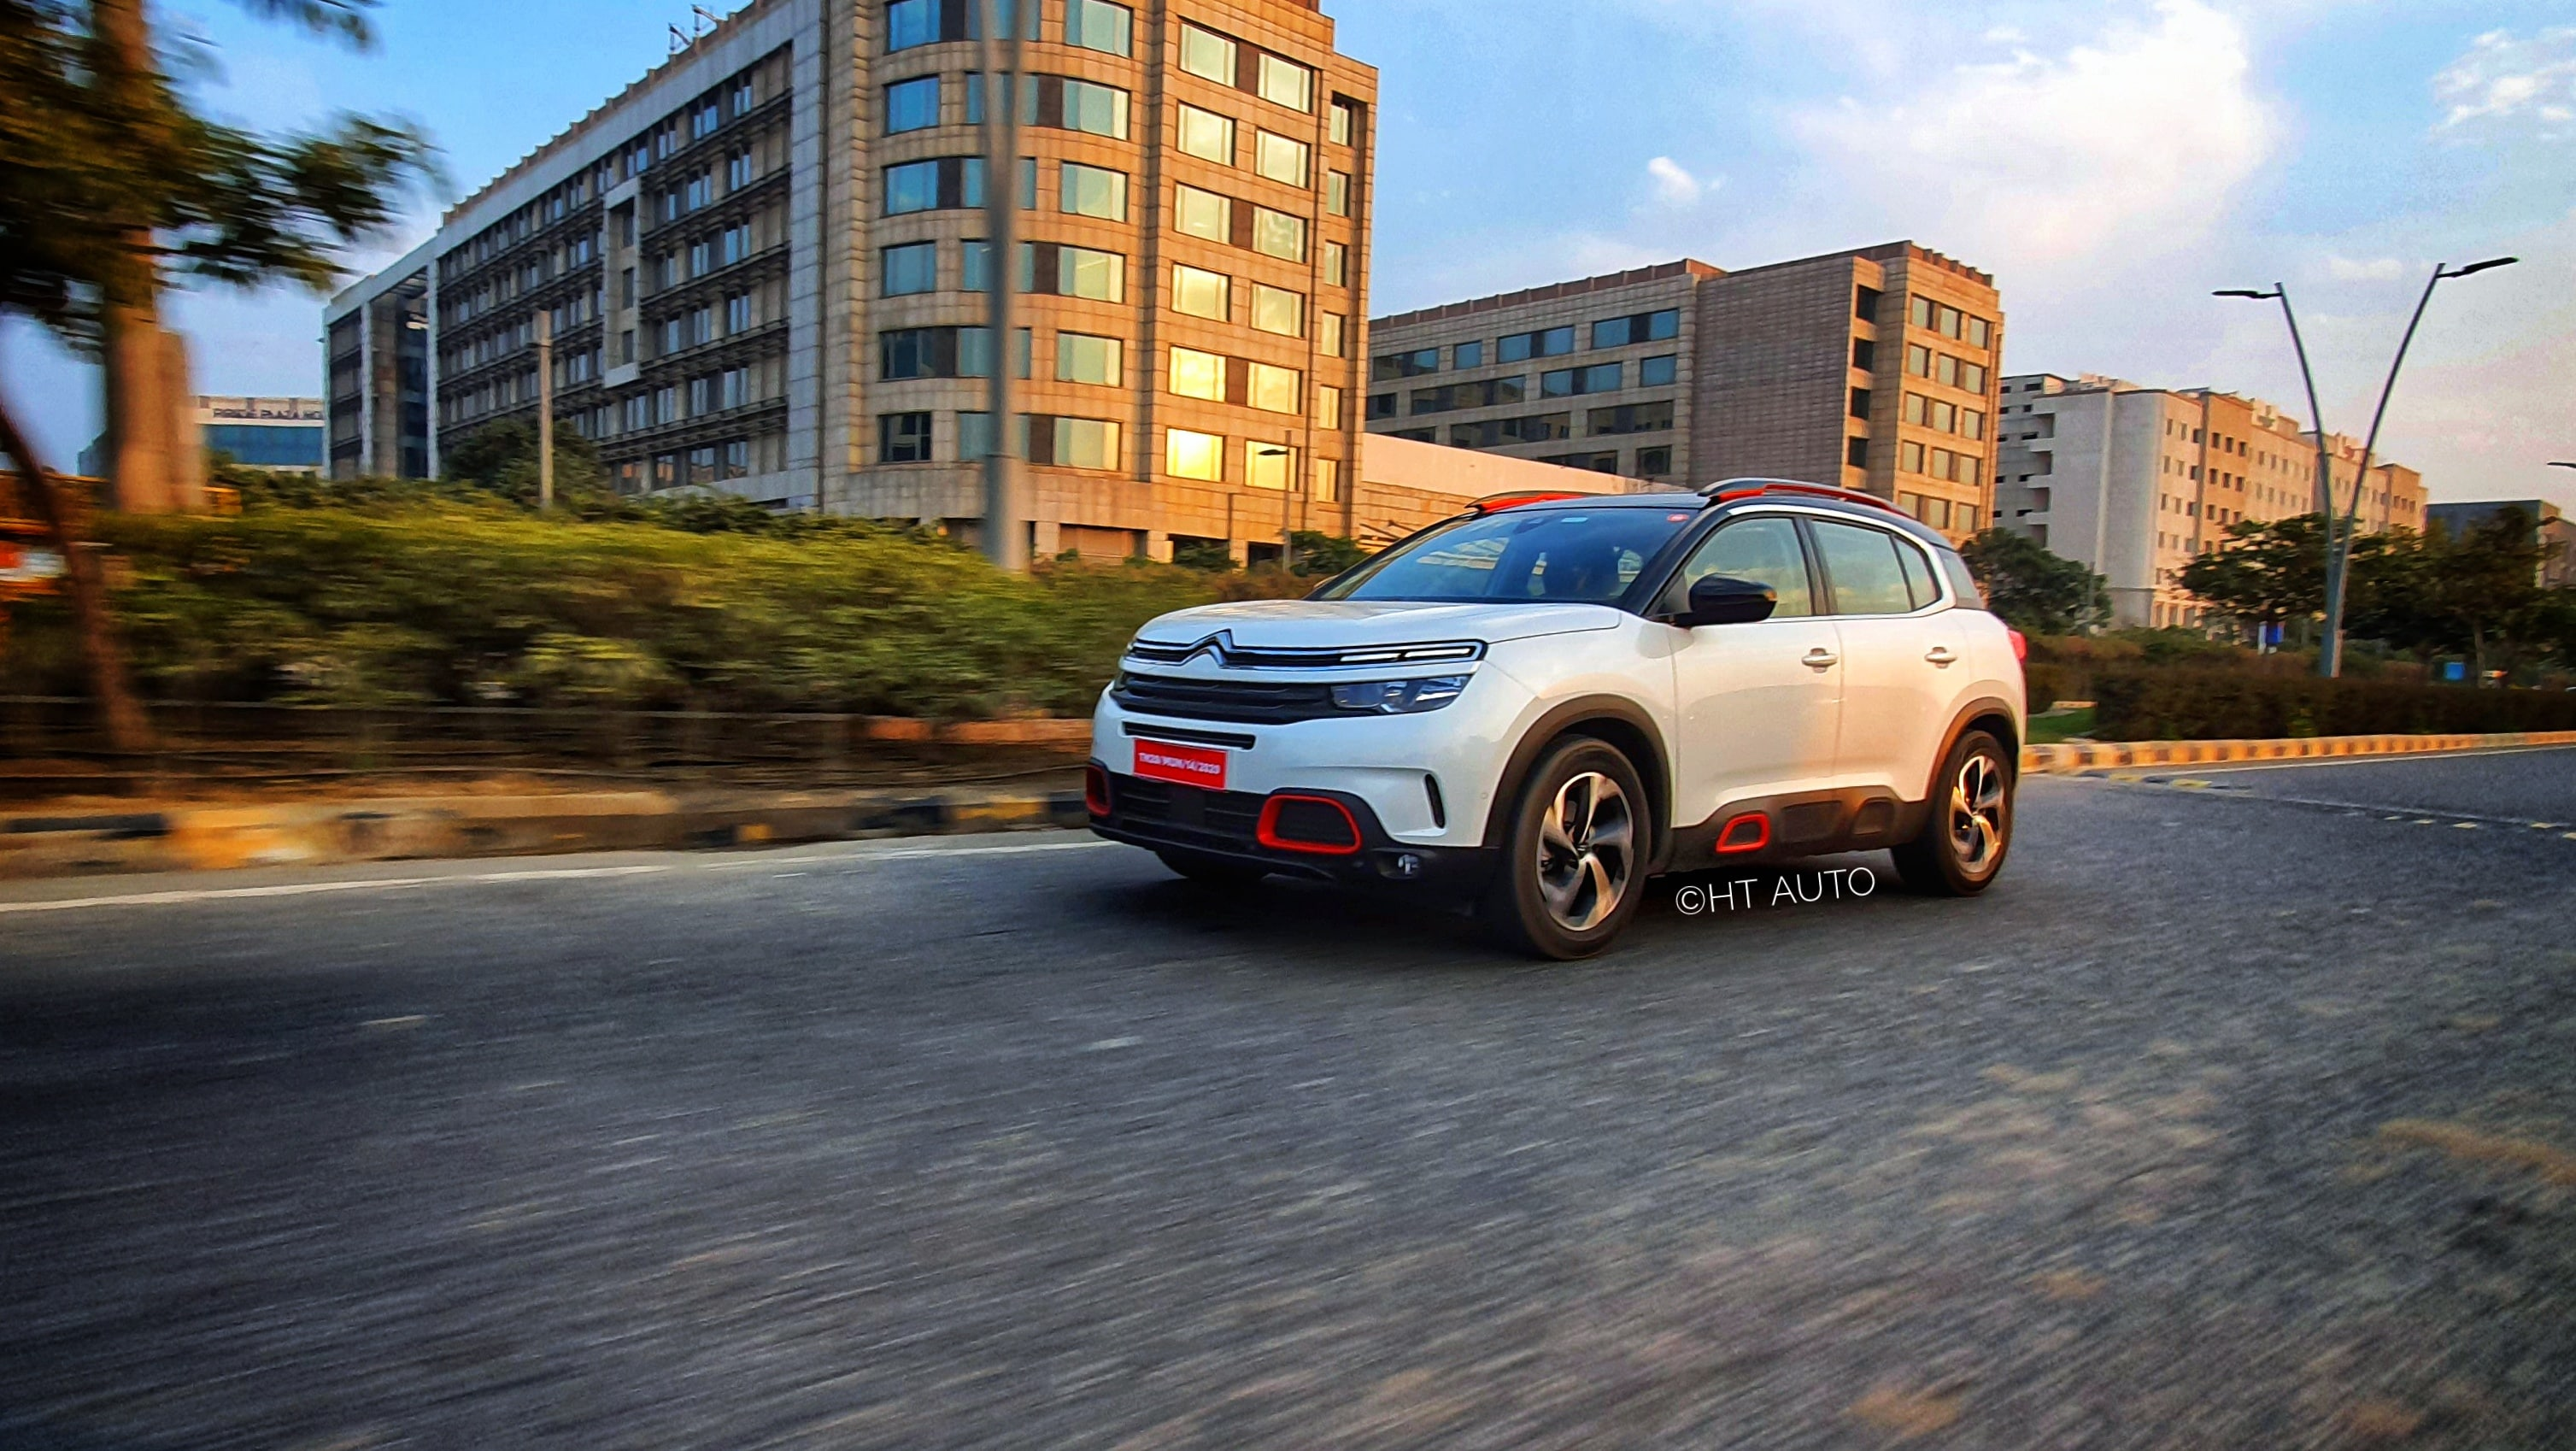 Citroen C5 Aircross, once launched, will take on Hyundai Tucson and VW Tiguan AllSpace. (HT Auto/Sabyasachi Dasgupta)